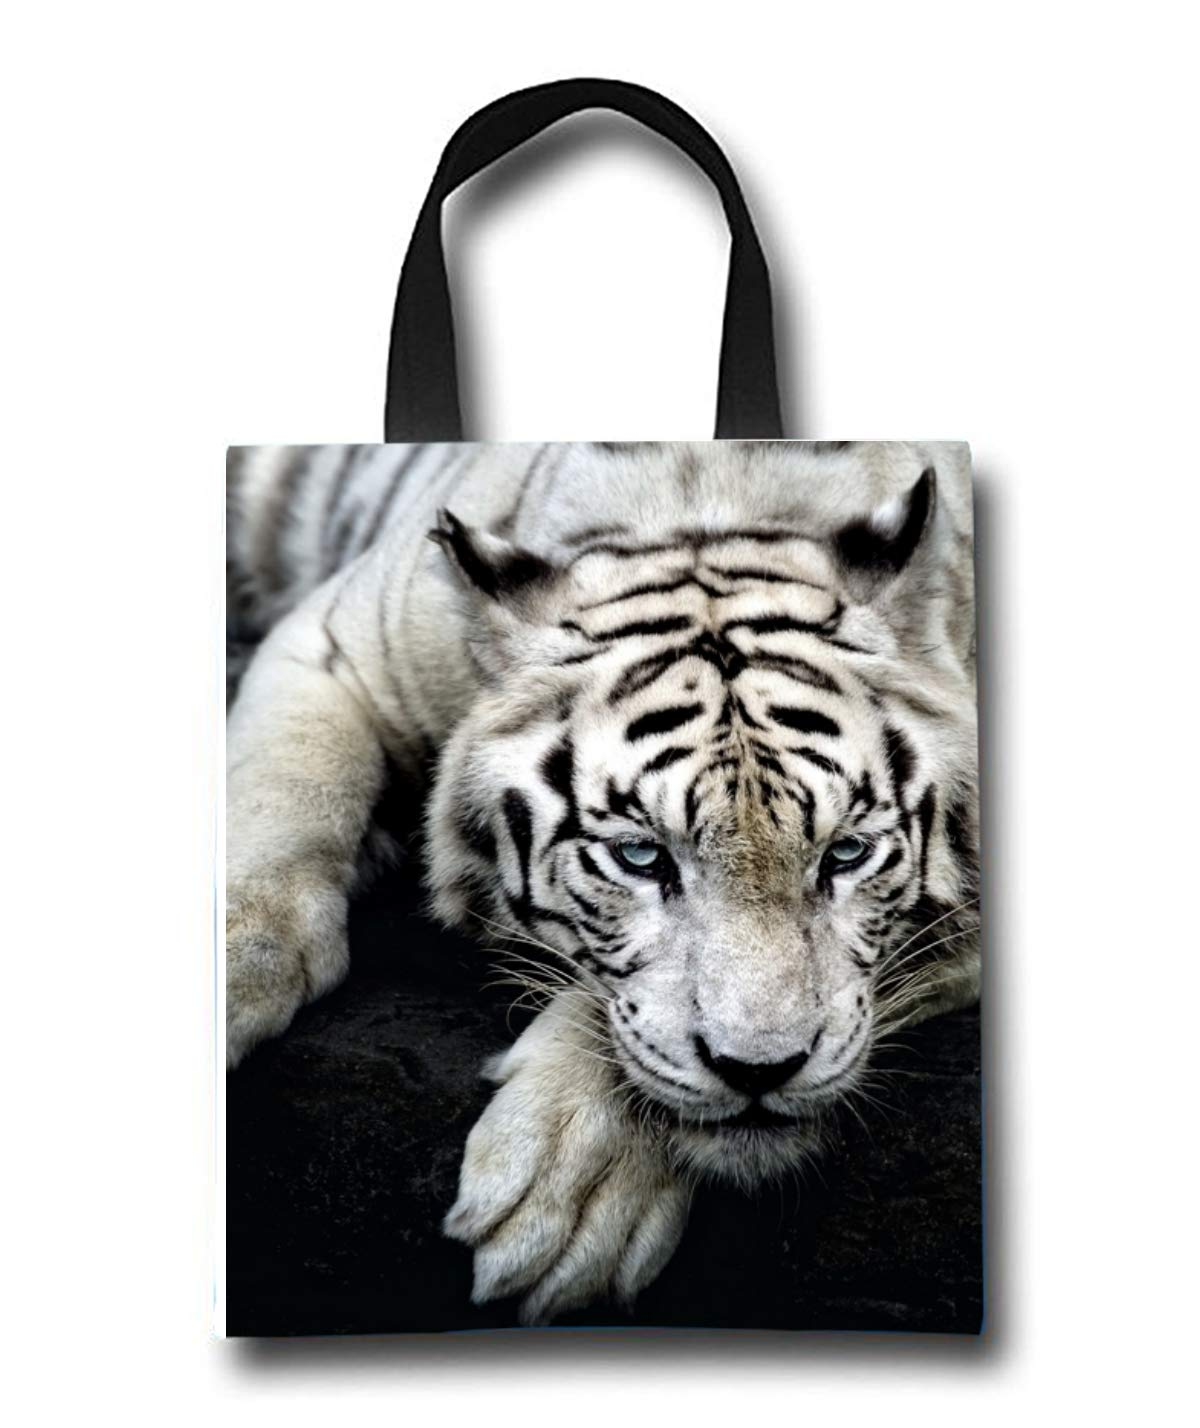 White Tiger Beach Tote Bag - Toy Tote Bag - Large Lightweight Market, Grocery & Picnic